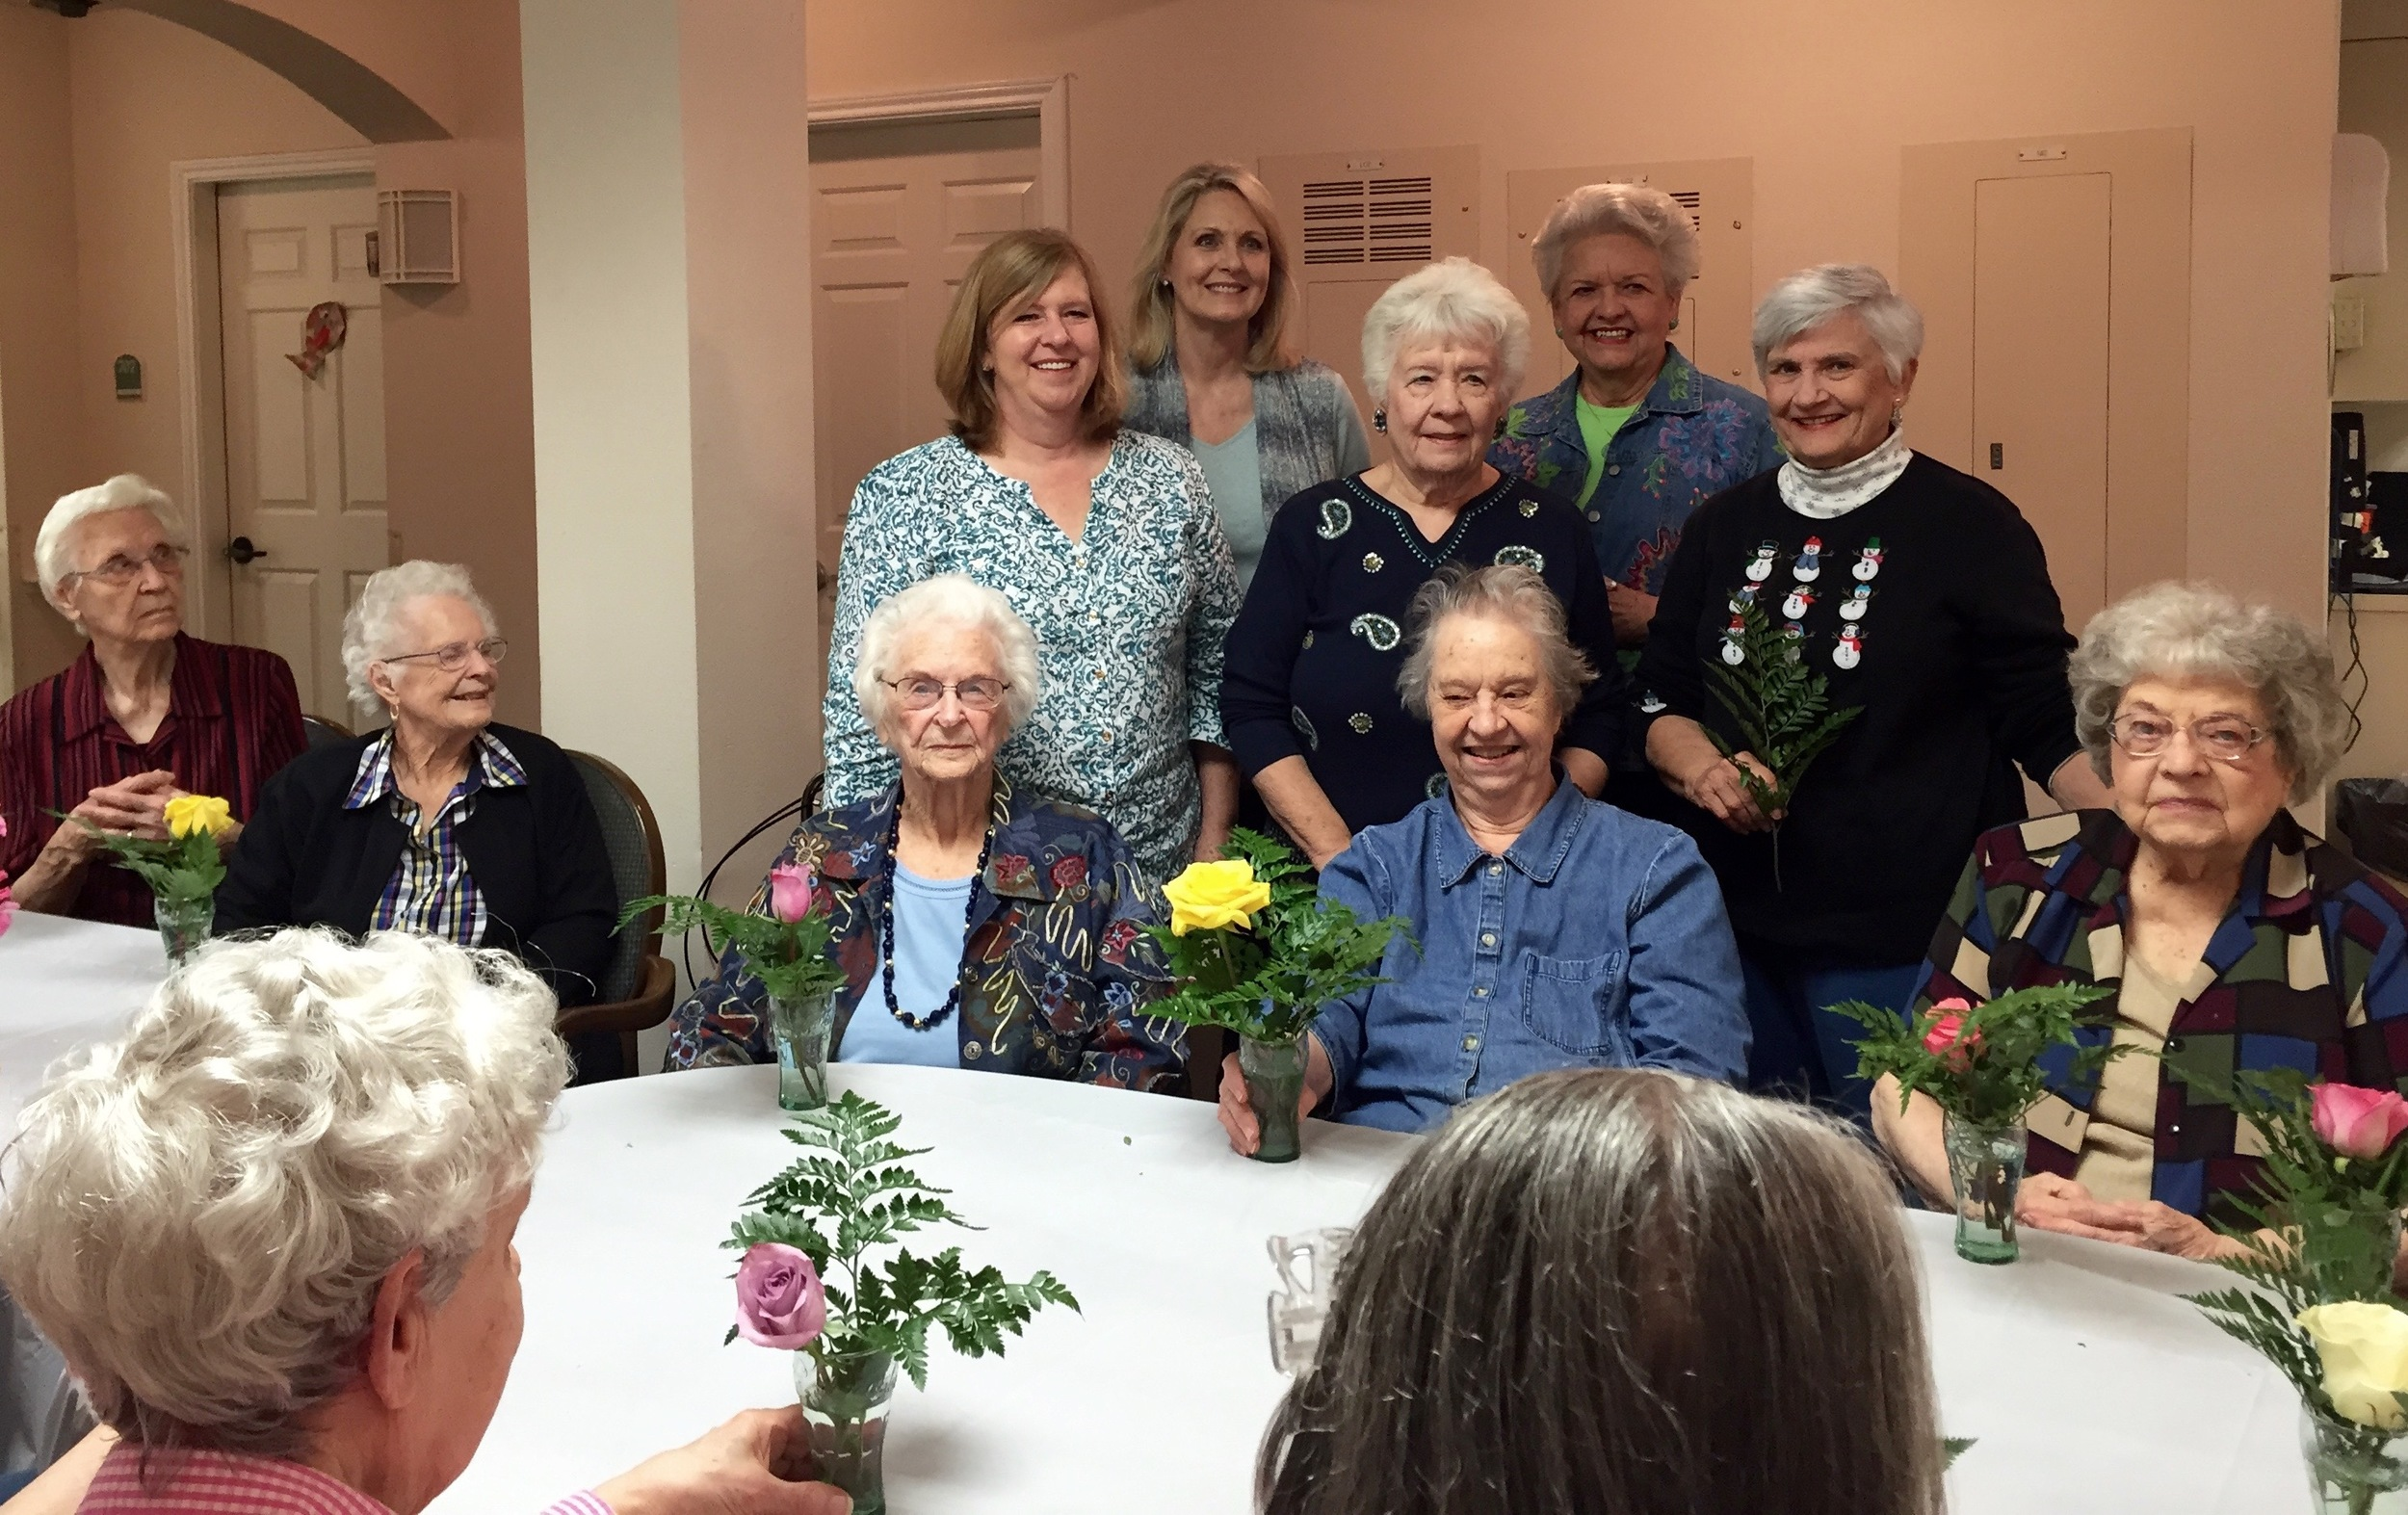 Residents with January Garden Therapy helpers - Donna Cummins, Sandy Batt, Merlene, Ann Watson, Carolyn Sander.